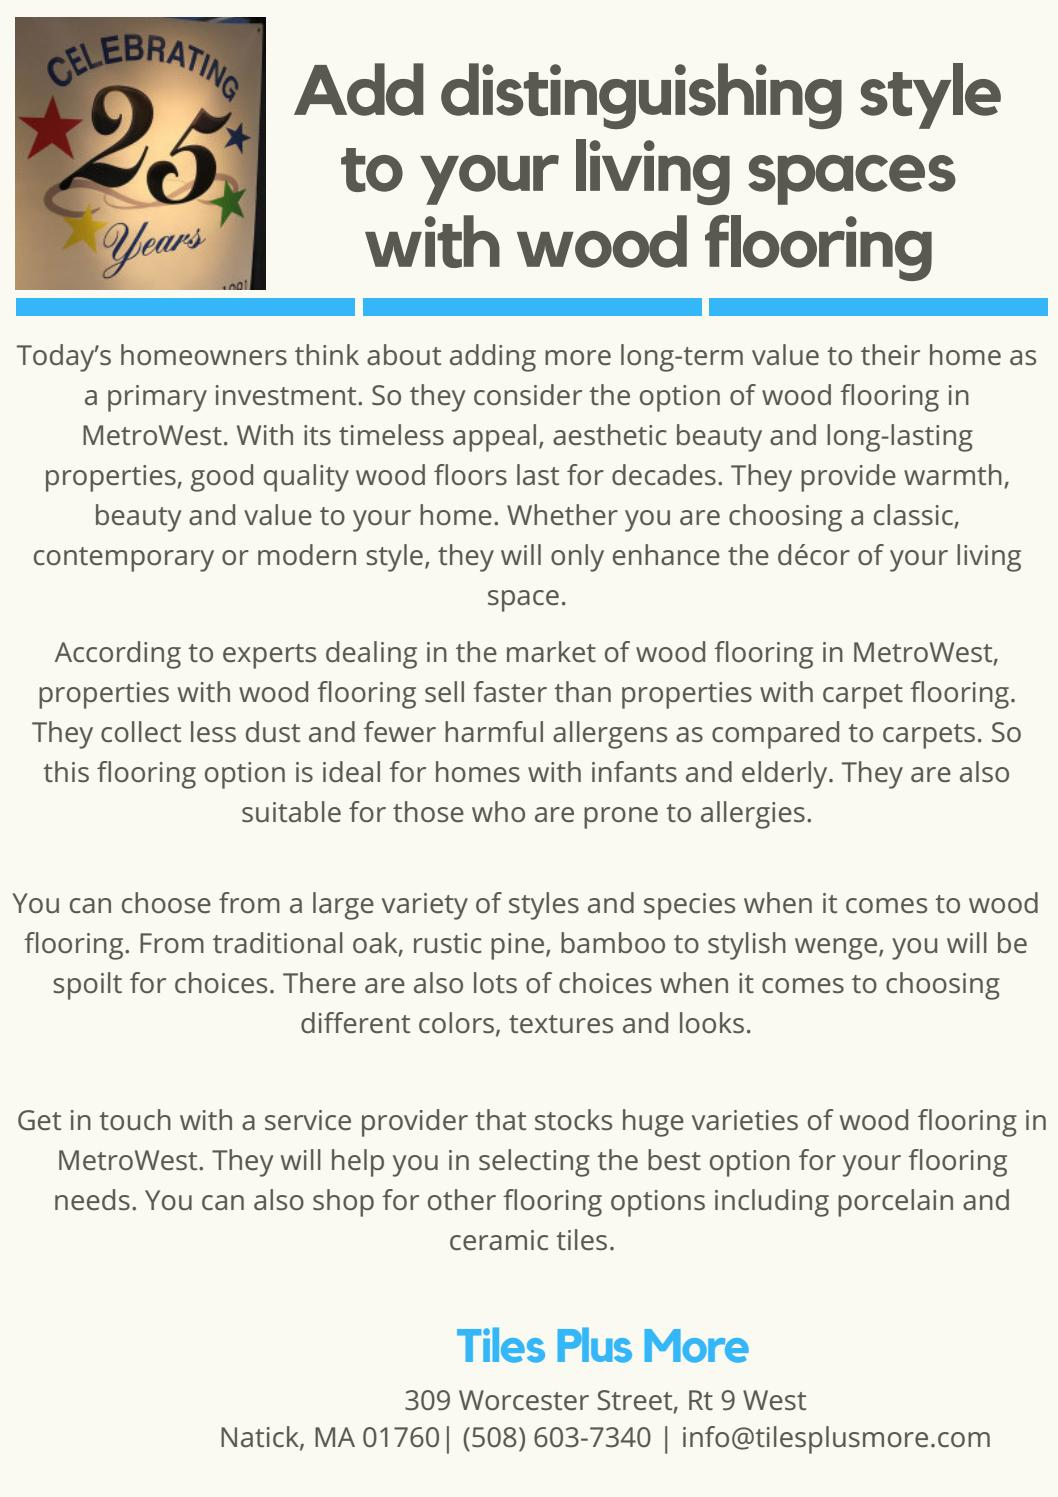 7e9b48a49bd Add distinguishing style to your living spaces with wood flooring by Tiles  Plus More - issuu